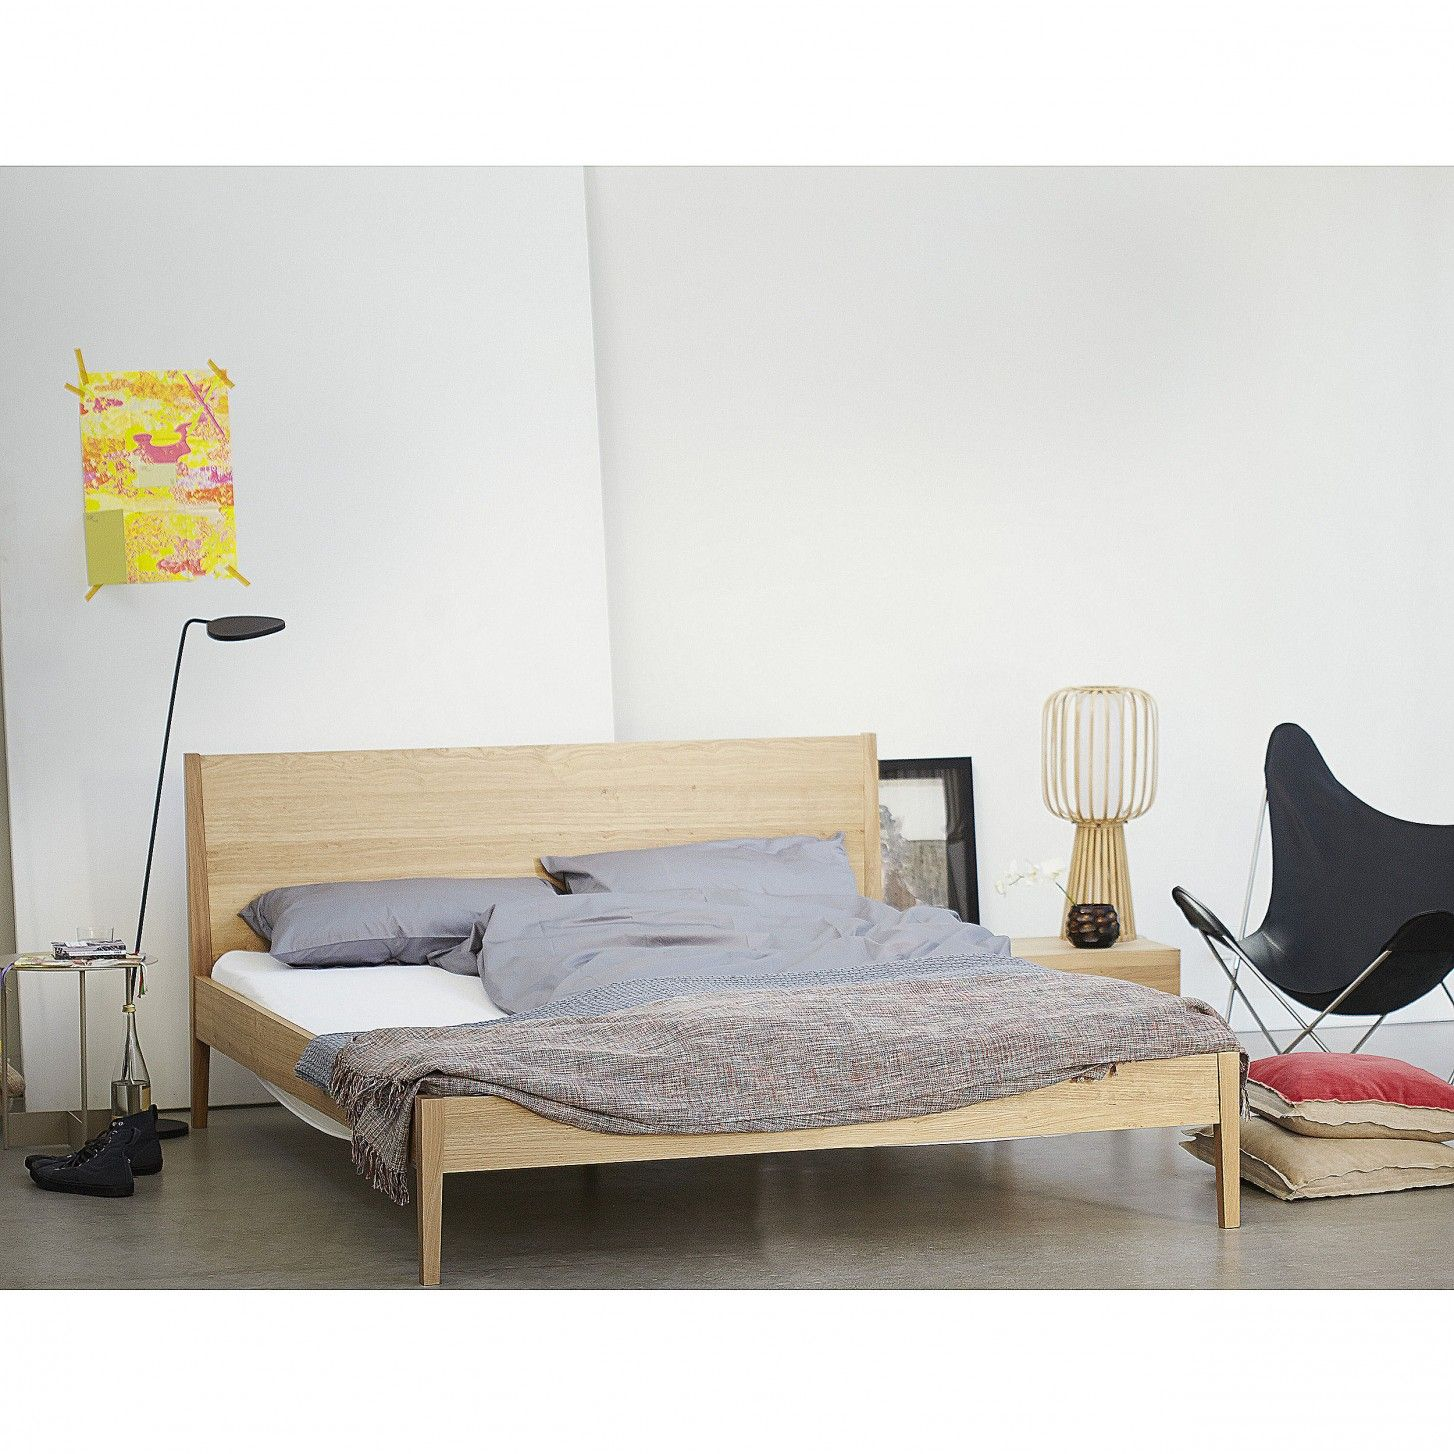 aleria bett von sulvag im ikarus design shop for the. Black Bedroom Furniture Sets. Home Design Ideas